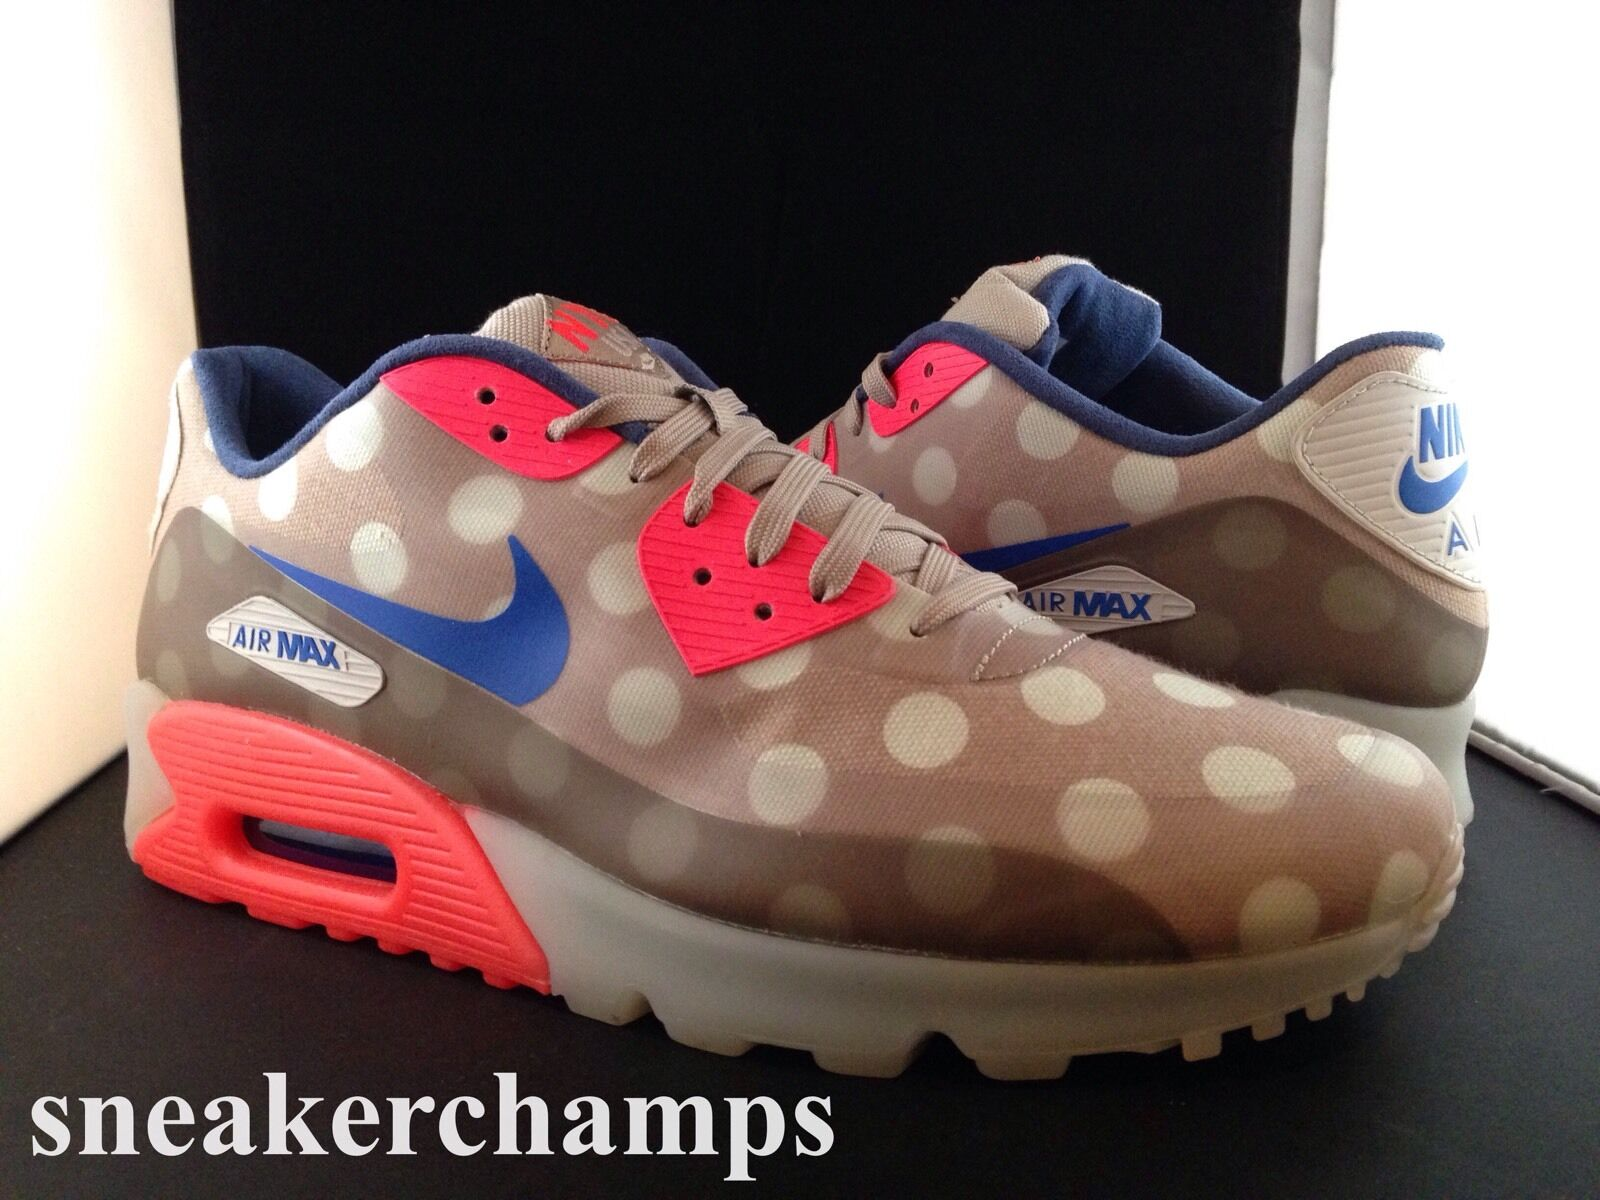 Air Max 90 Ice City QS 'NYC' - 667635-001 - Size 10 -